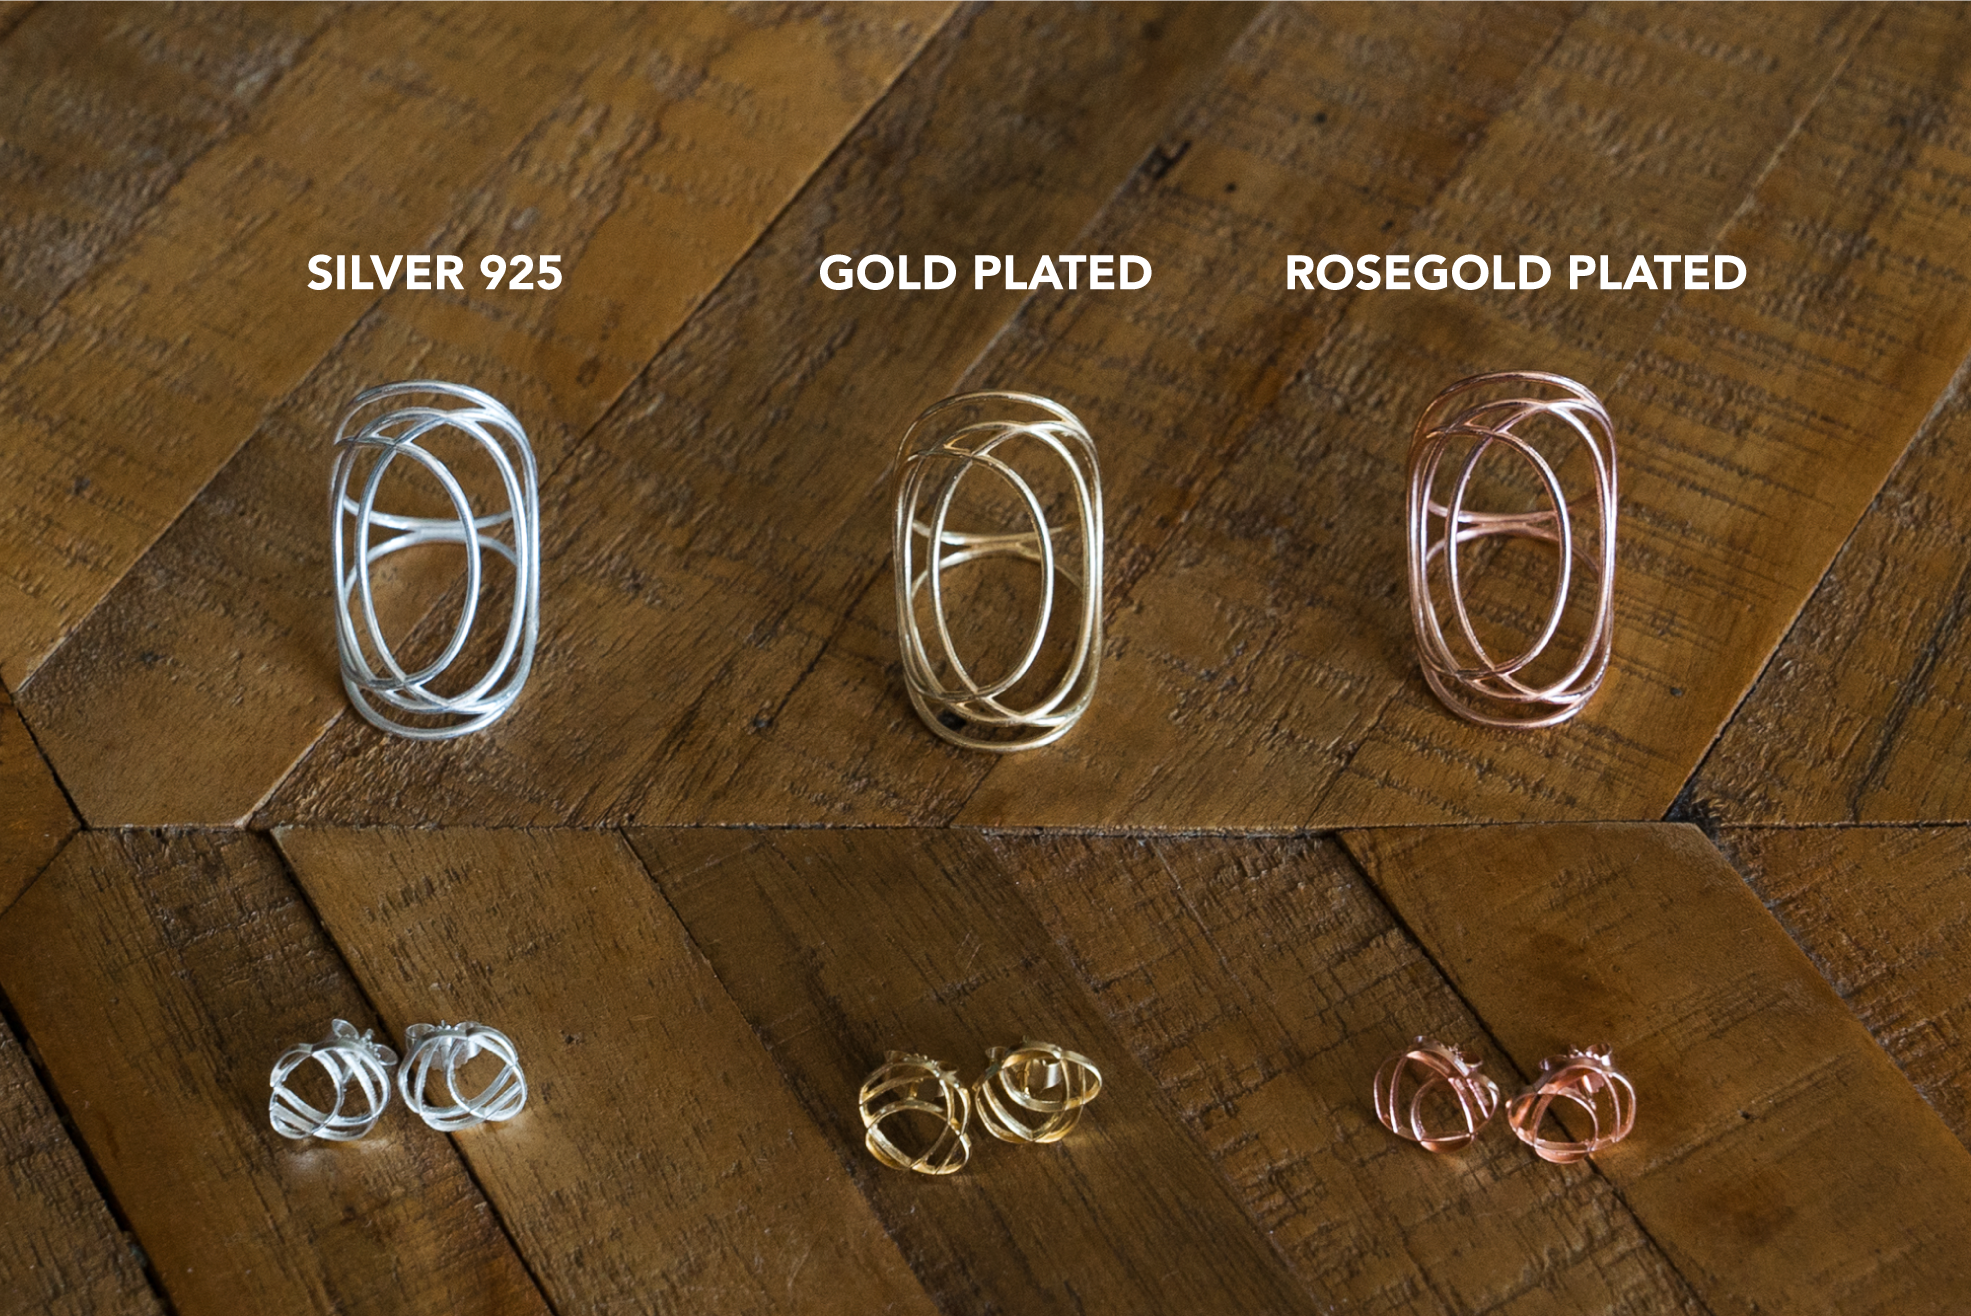 justine leconte how to care plated jewelry metals silver gold brass dos donts oxidation cleaning blog post